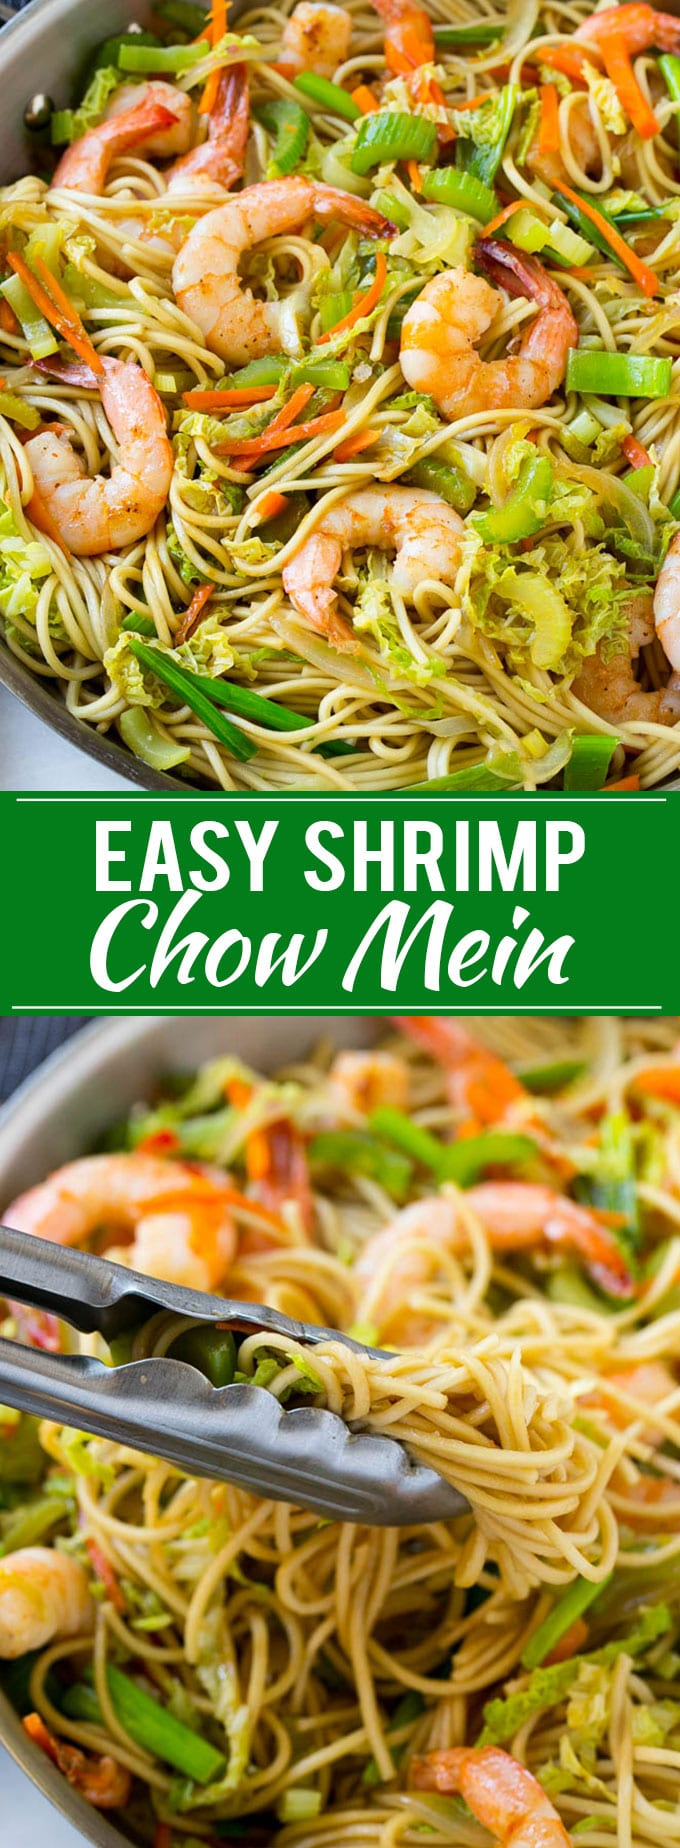 Shrimp Chow Mein Recipe | One Pot Meal Shrimp Chow Mein | Best Shrimp Chow Mein | Easy Shrimp Chow Mein | One Pot Meal Chow Mein | Chow Mein Recipe